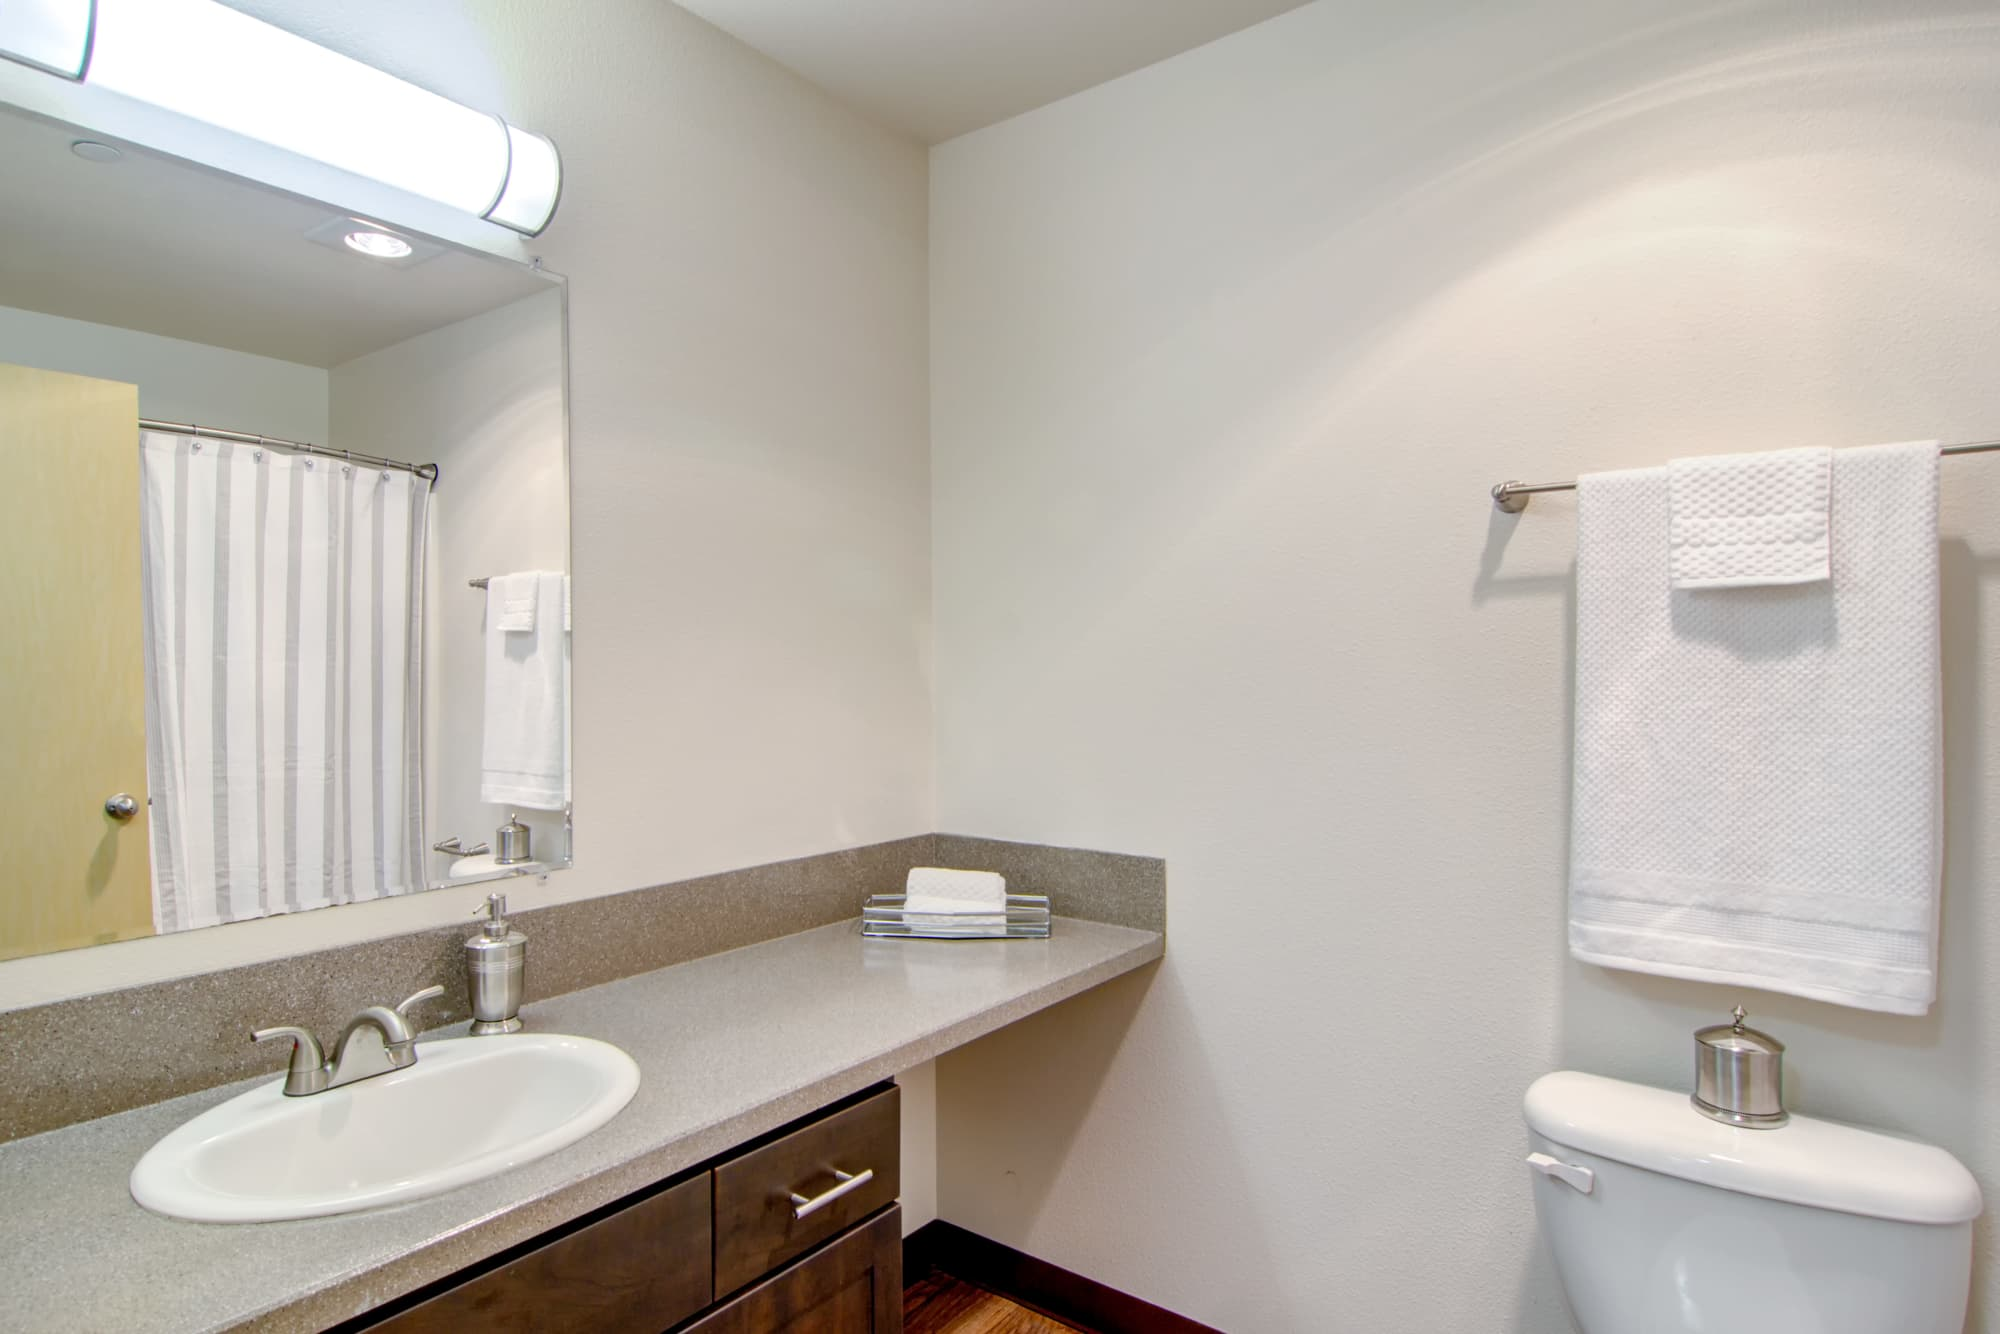 Renovated bathroom with brown cabinets at The Addison Apartments in Vancouver, Washington